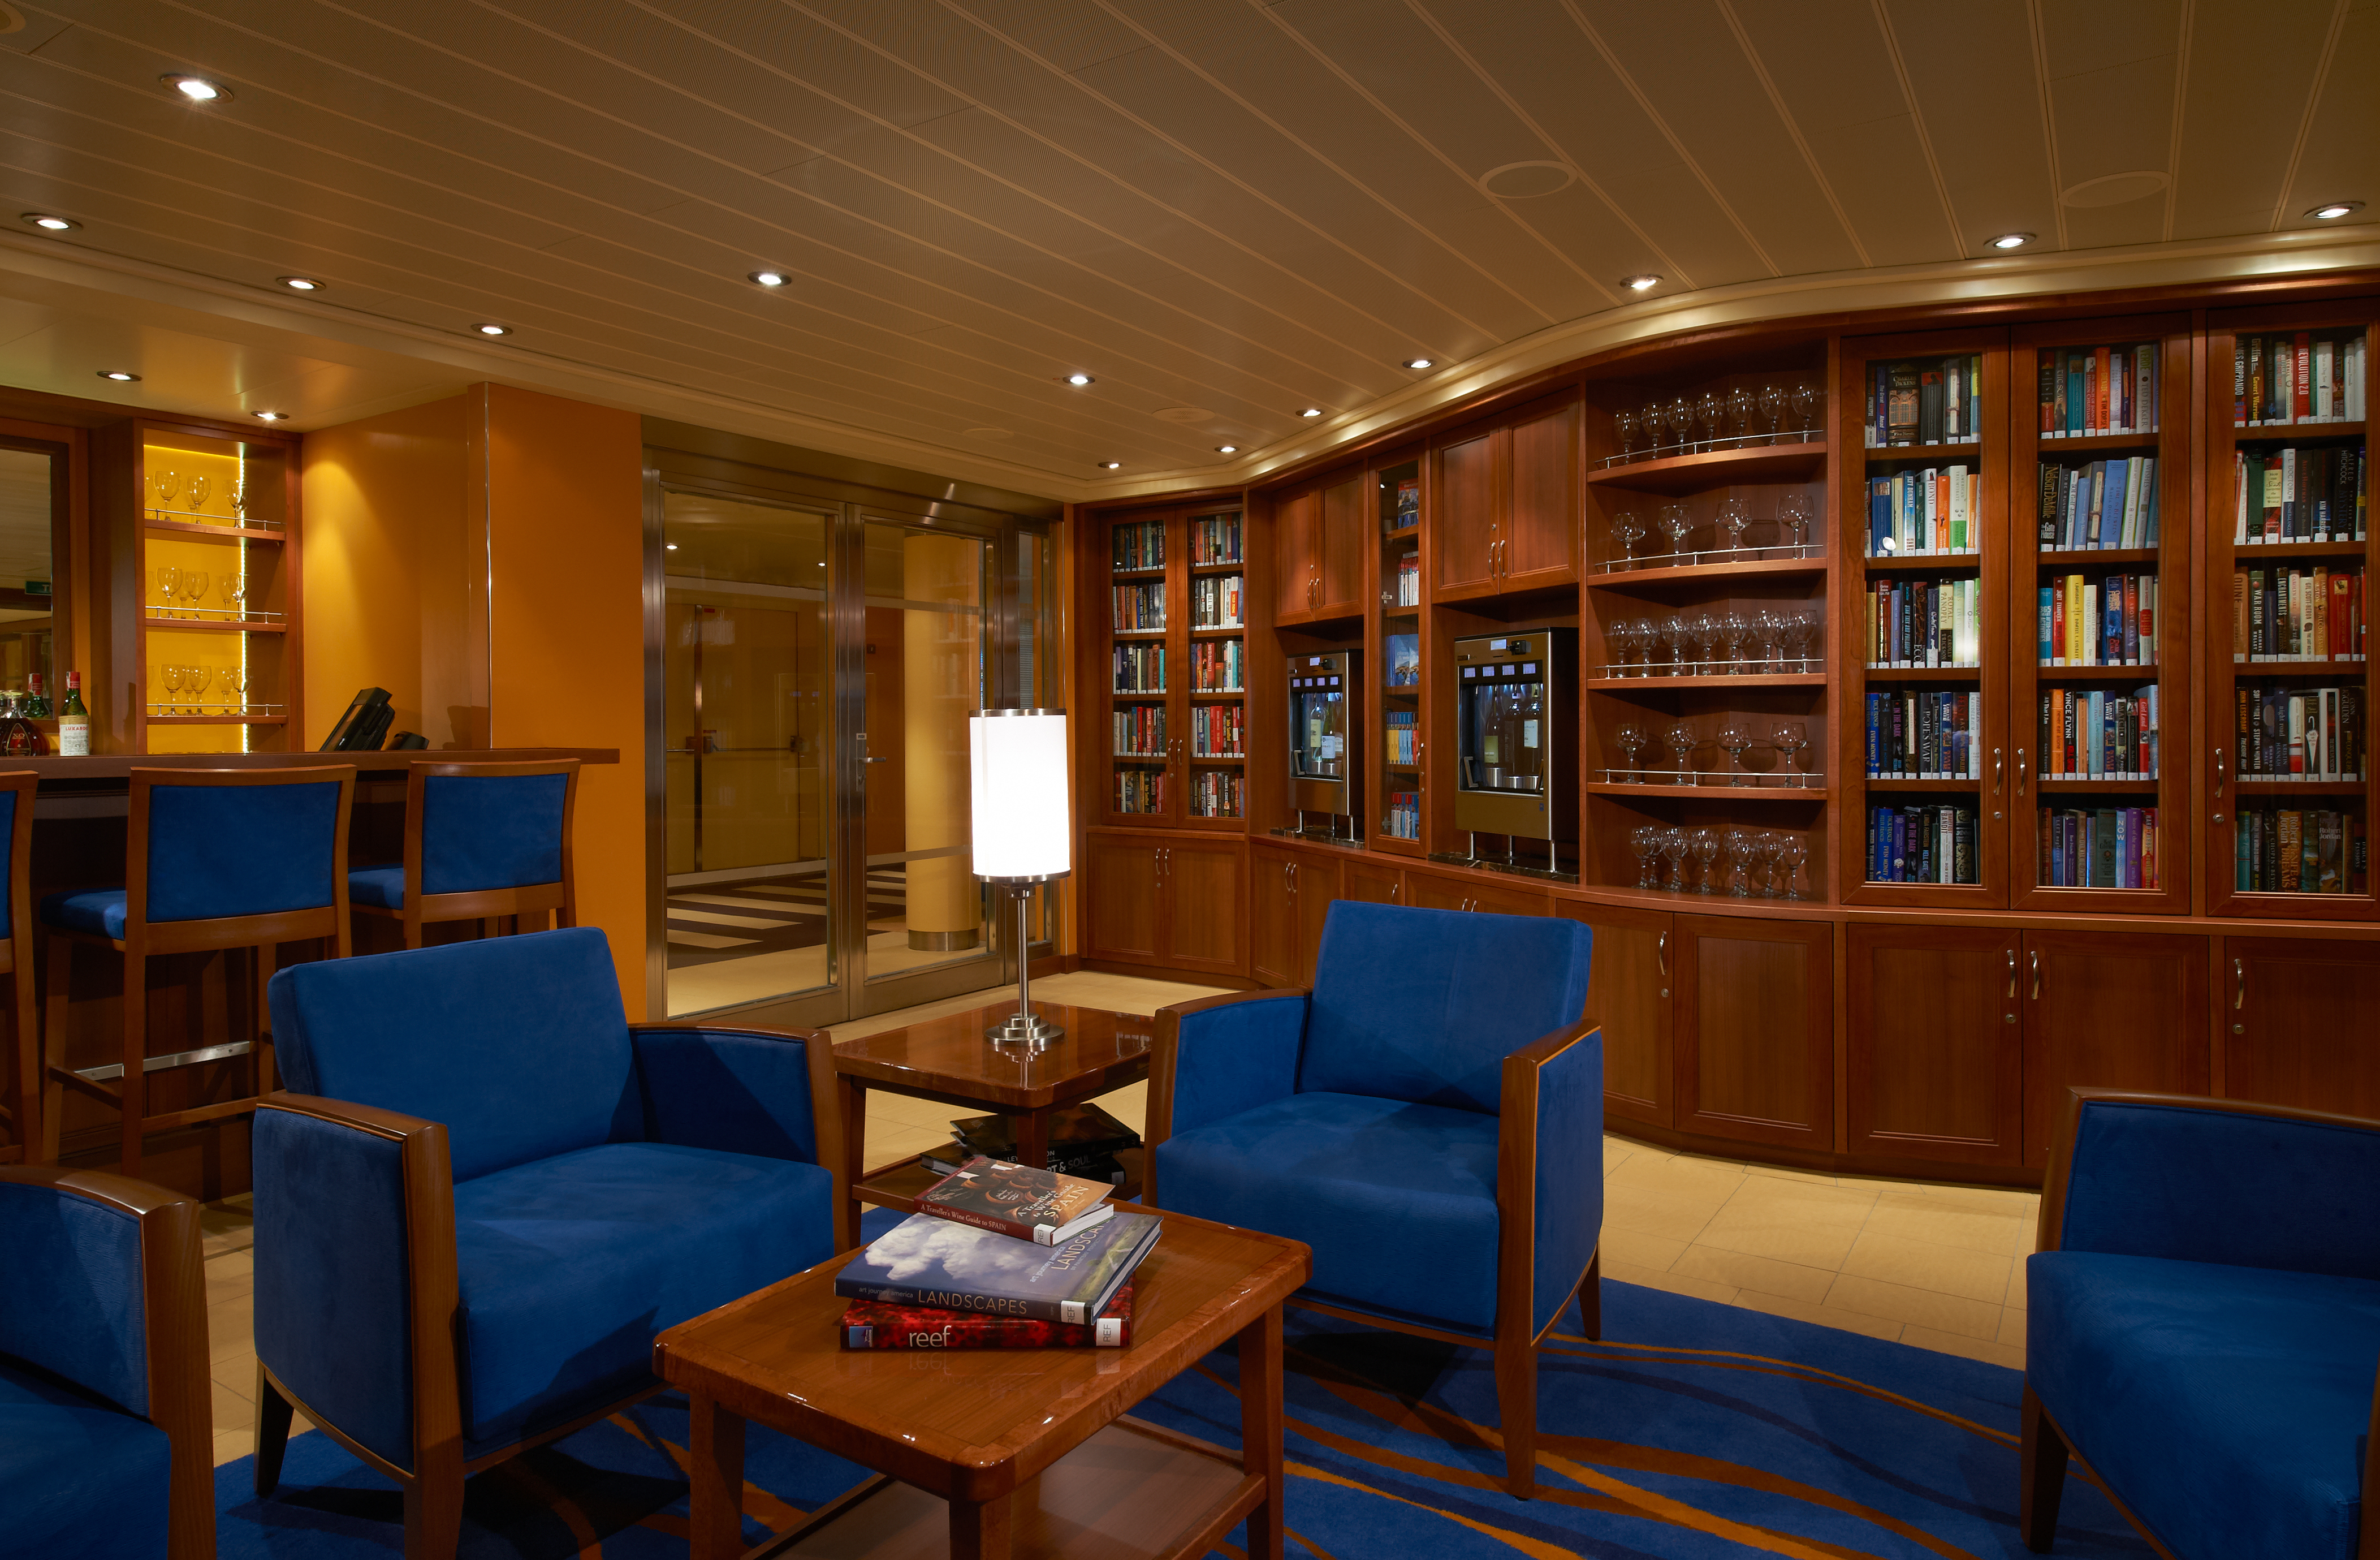 Carnival Cruise Lines Carnival Breeze Library Bar 1.jpg